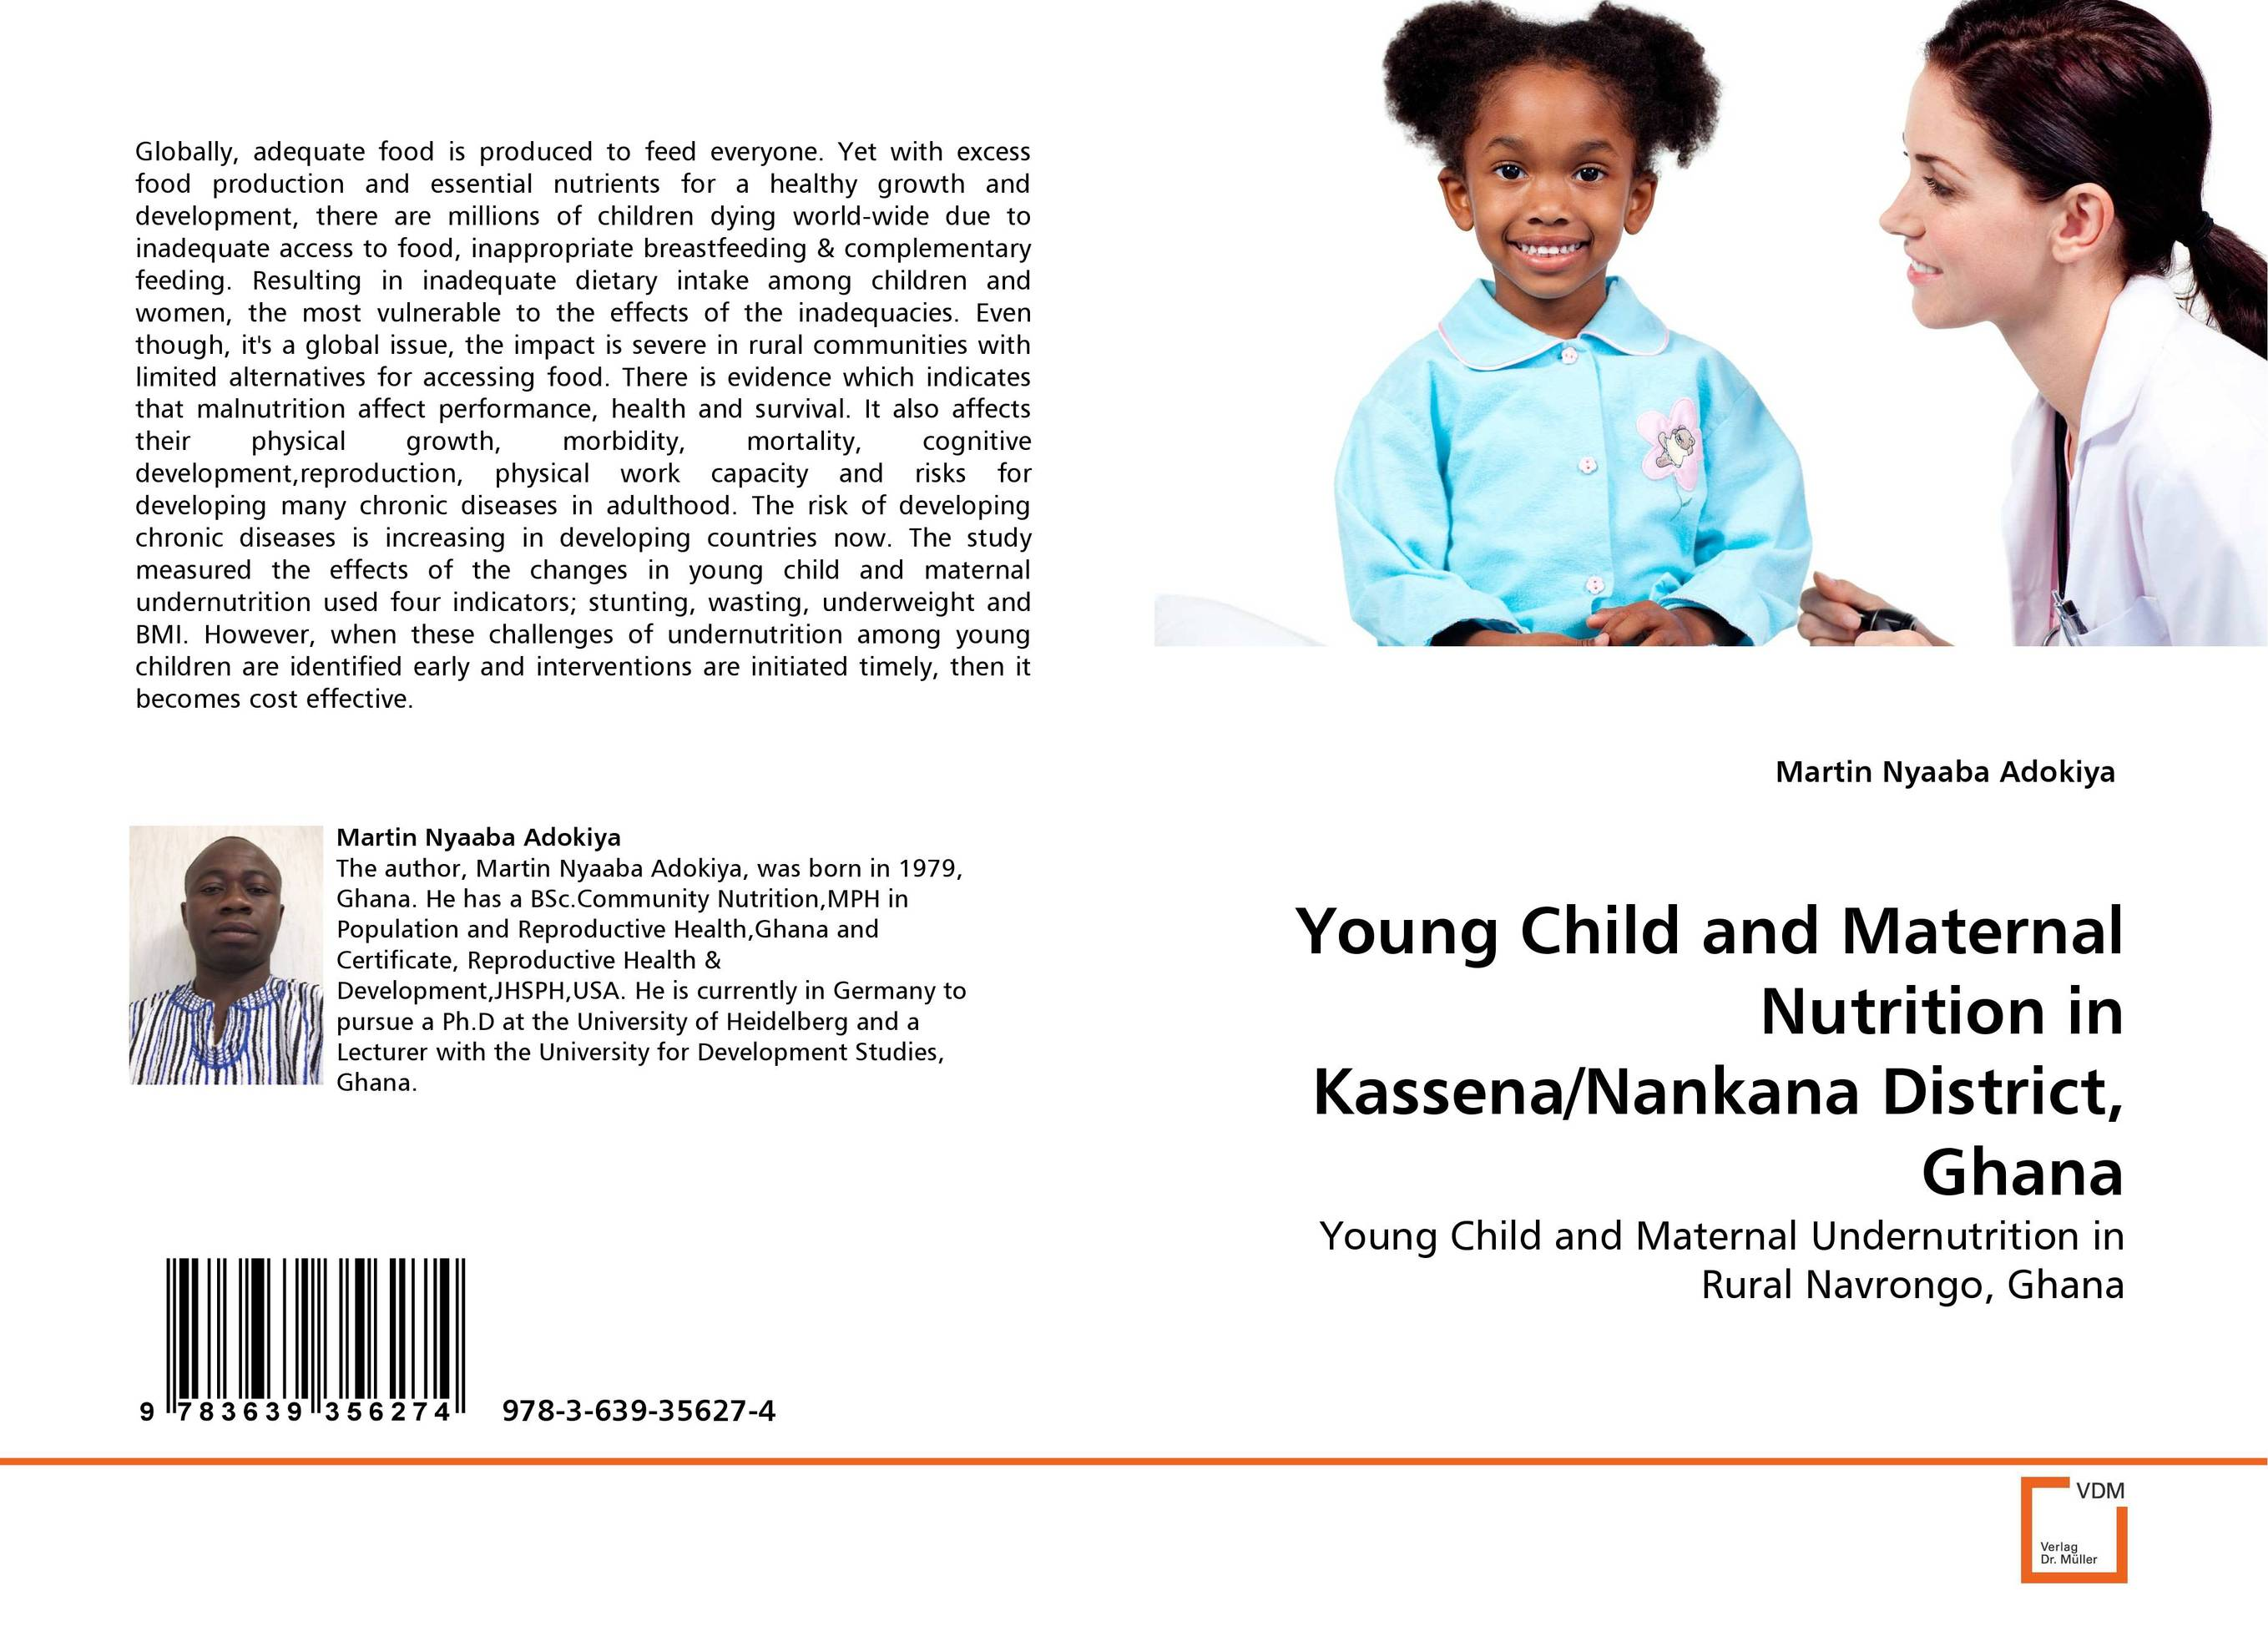 Young Child and Maternal Nutrition in Kassena/Nankana District, Ghana